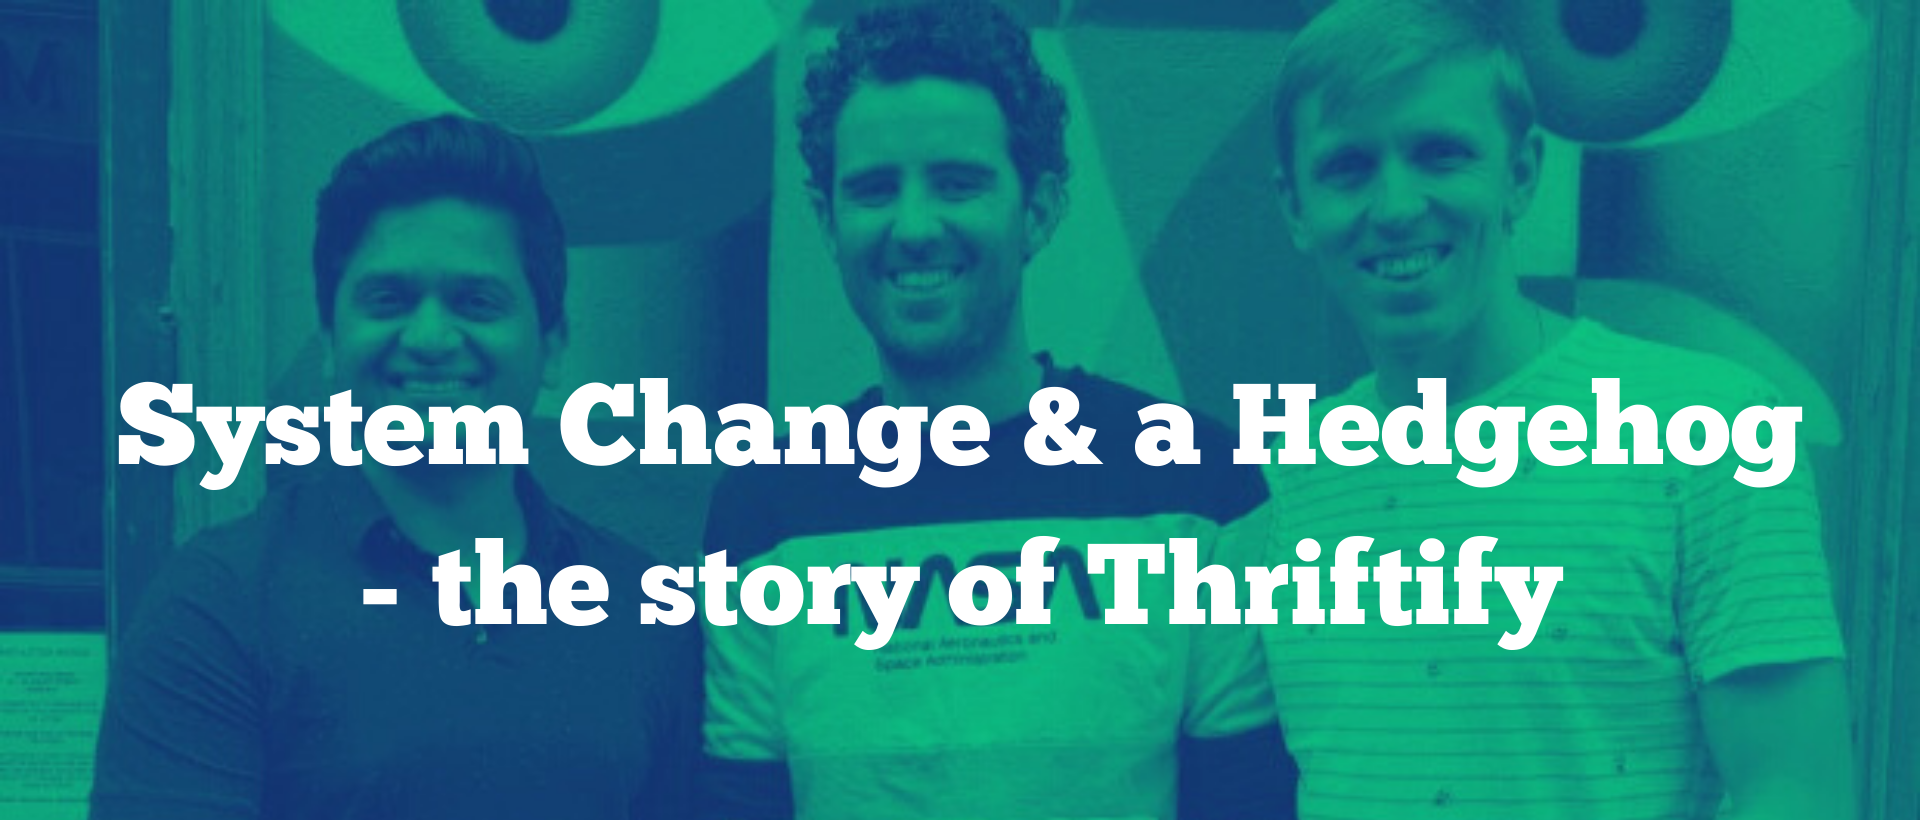 System Change & a Hedgehog - the story of Thriftify